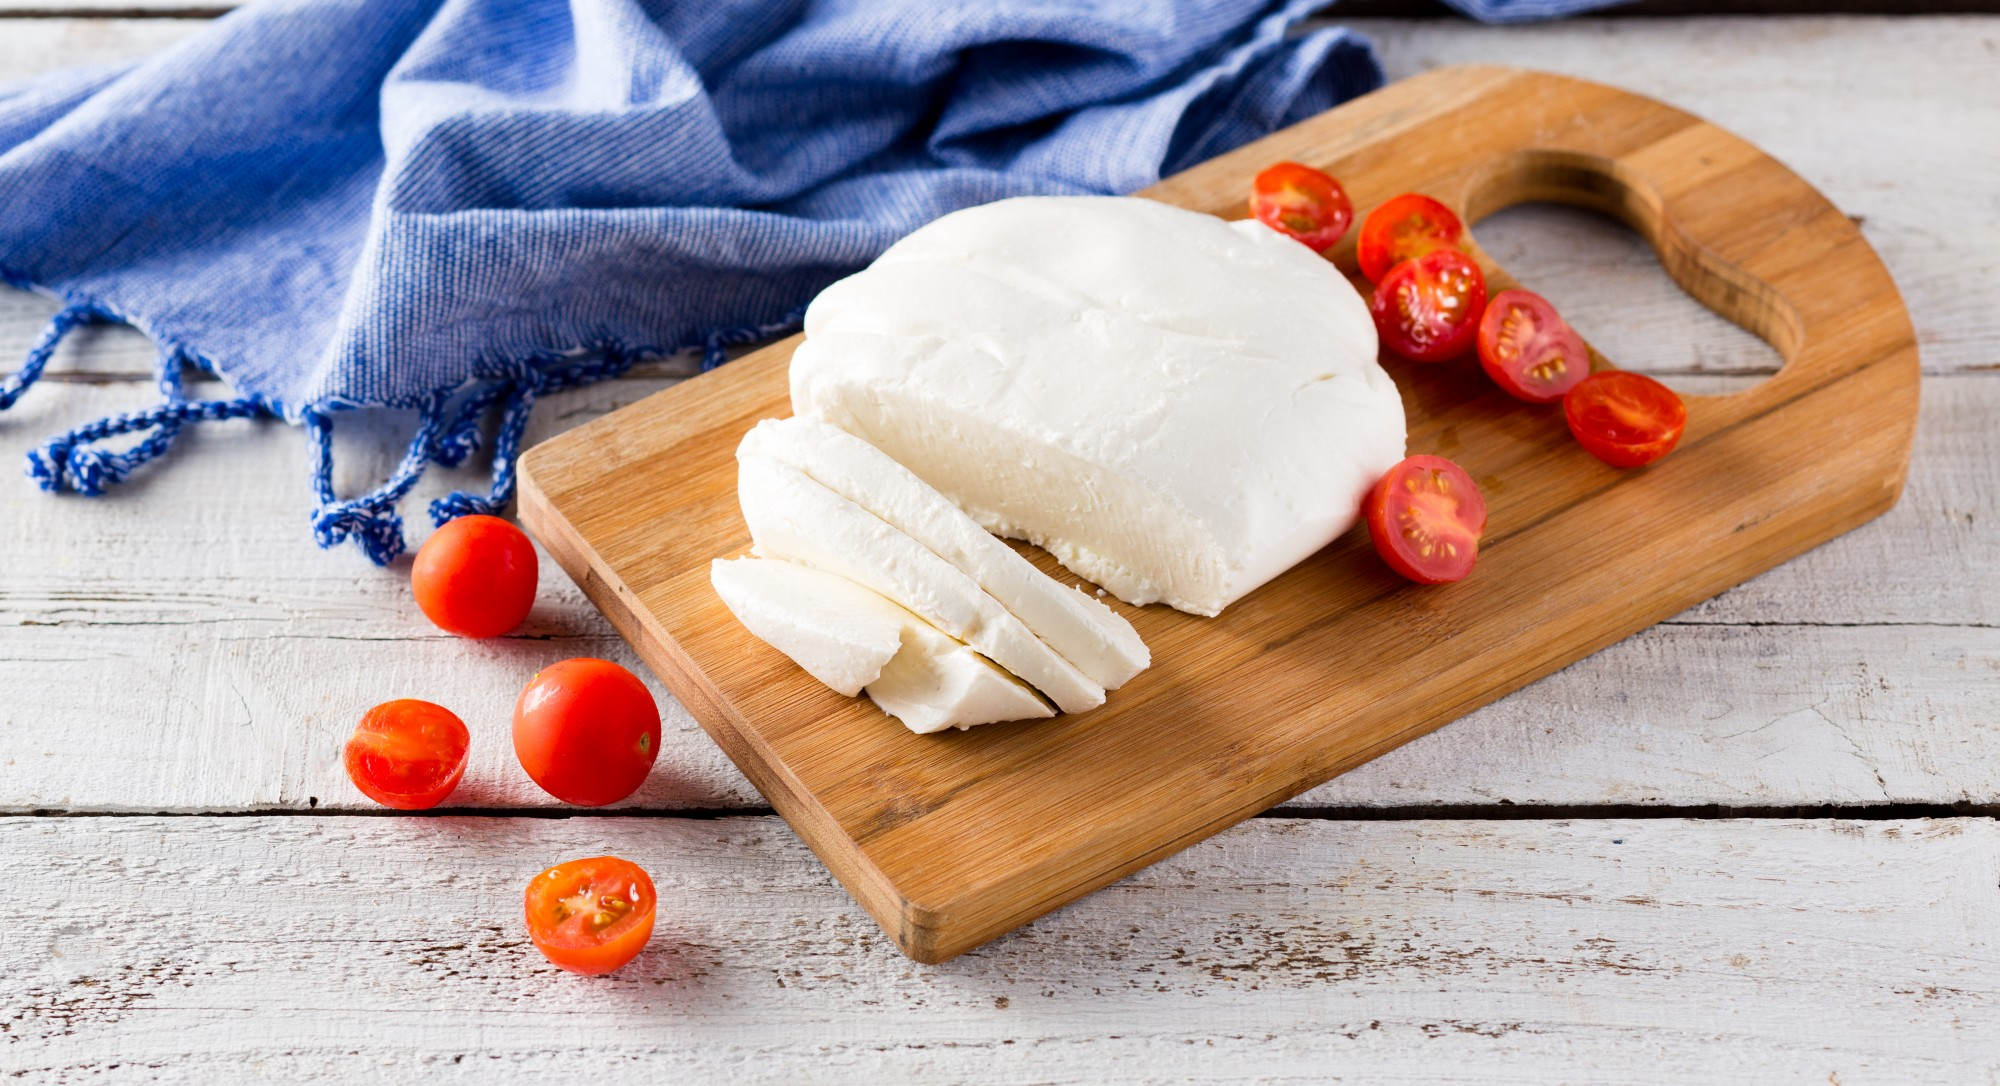 Thrive Tries It: Homemade Mozzarella In Less Than 30 Minutes